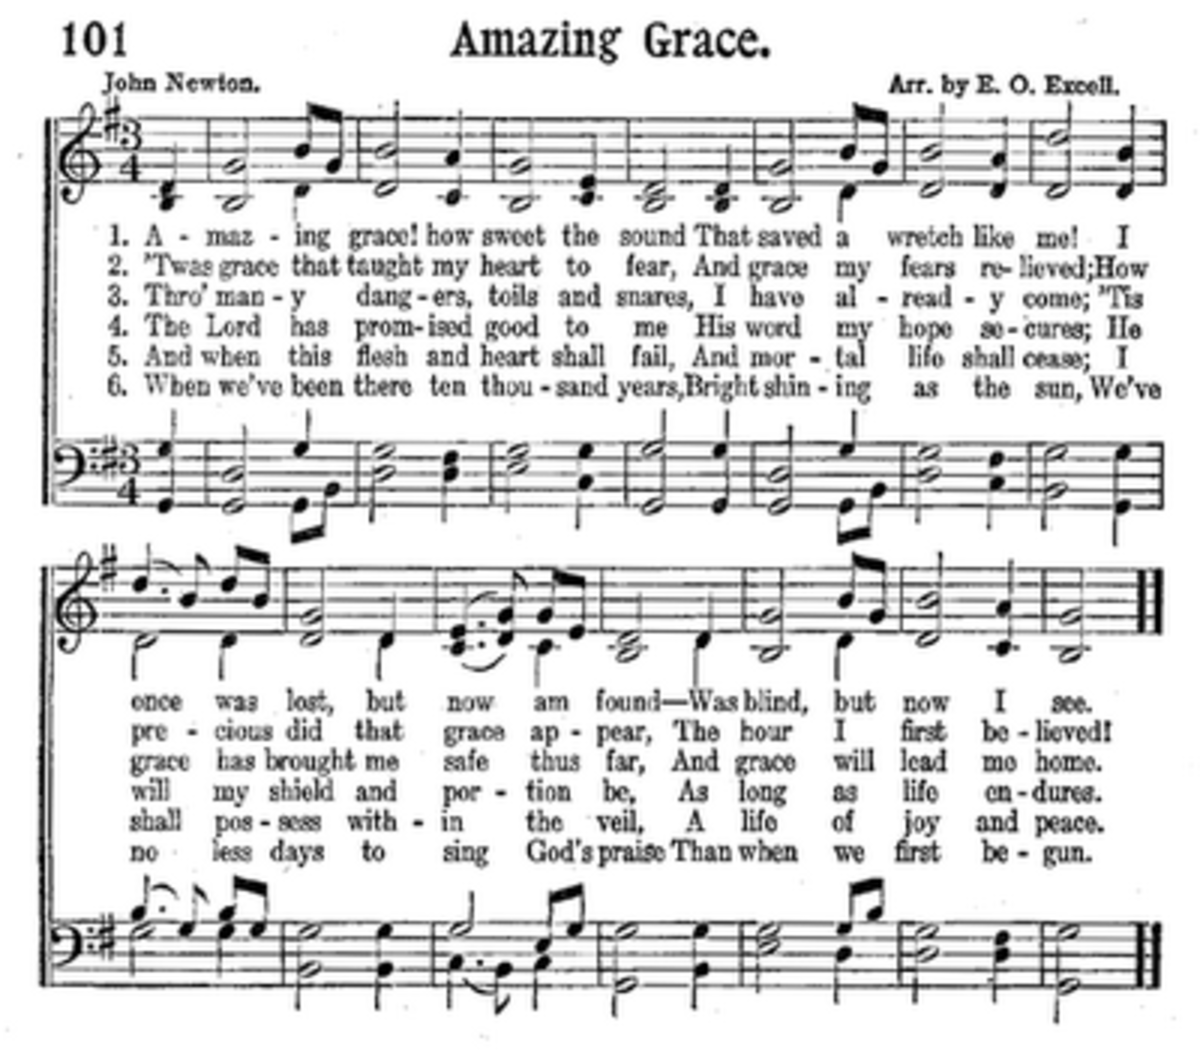 -amazing-grace-in-40-languages-a-new-record-on-guinness-this-christmas